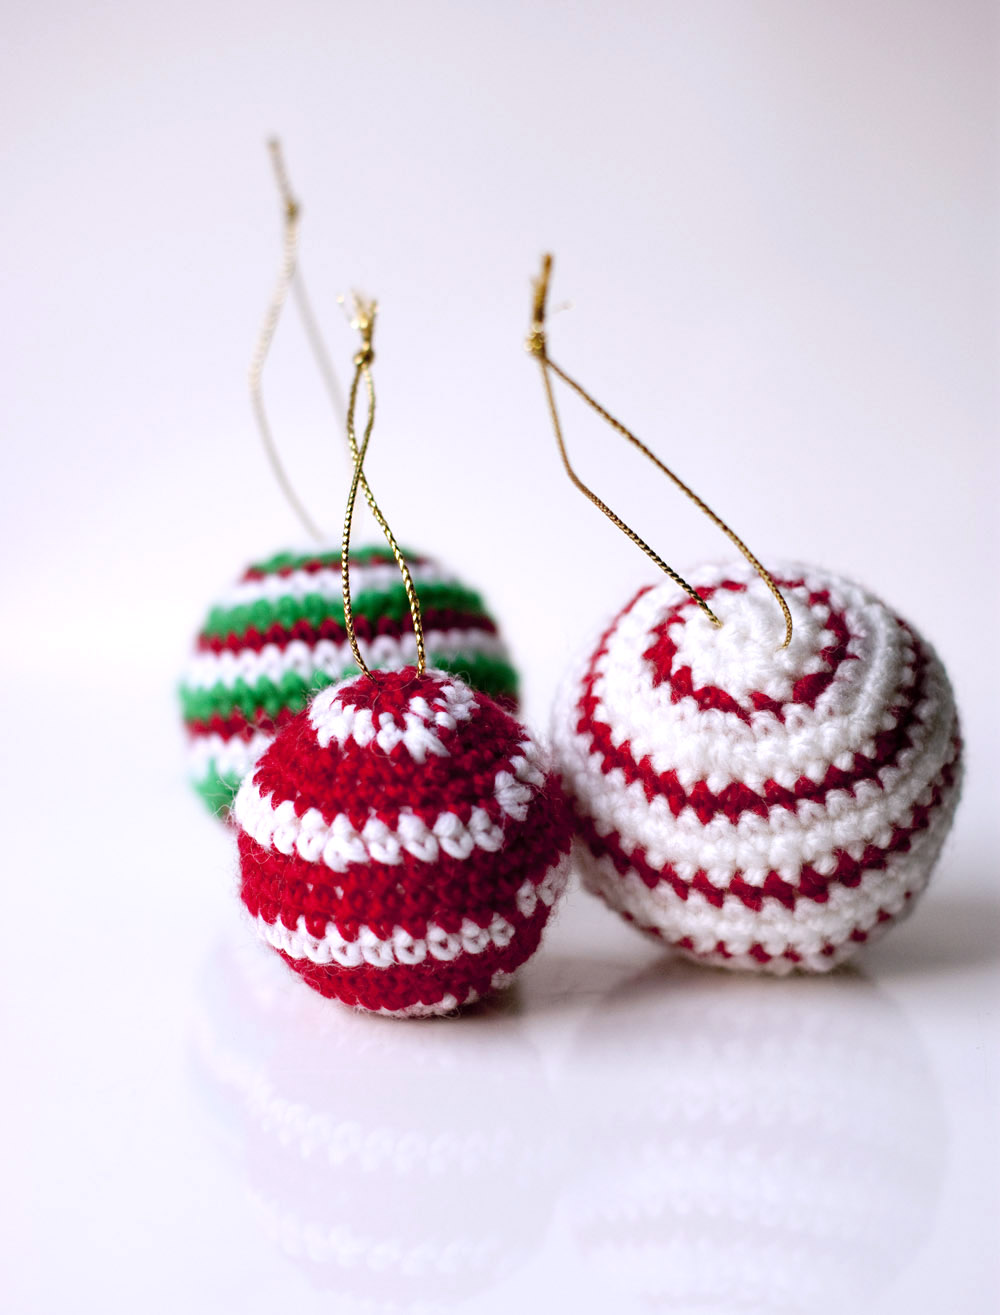 Free Crochet Pattern Christmas Bauble : Sofia Sobeide: Crocheted Christmas Ornaments Baubles ...